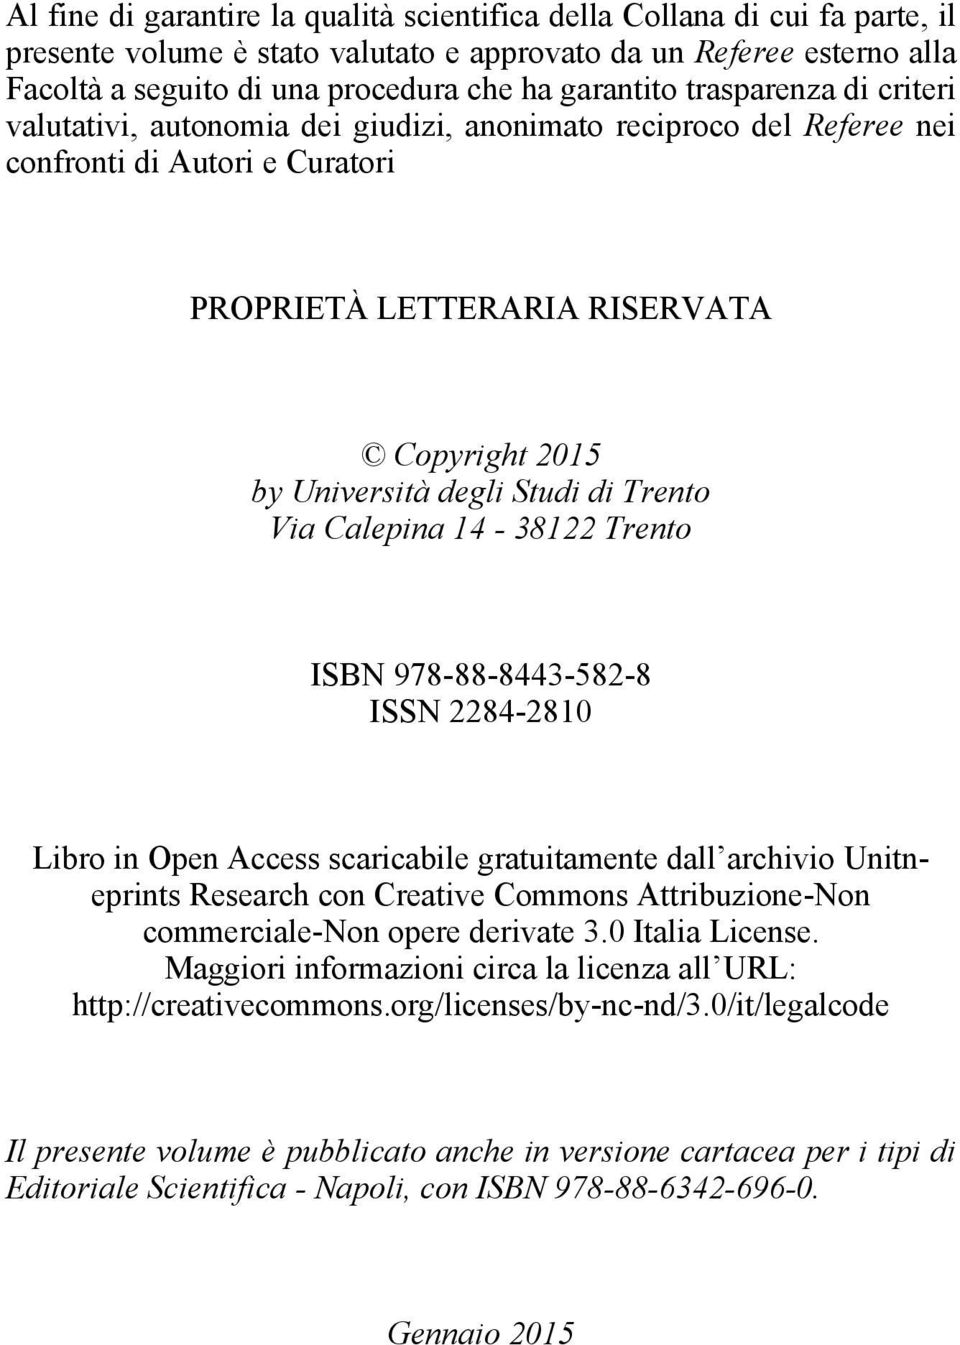 degli Studi di Trento Via Calepina 14-38122 Trento ISBN 978-88-8443-582-8 ISSN 2284-2810 Libro in Open Access scaricabile gratuitamente dall archivio Unitneprints Research con Creative Commons